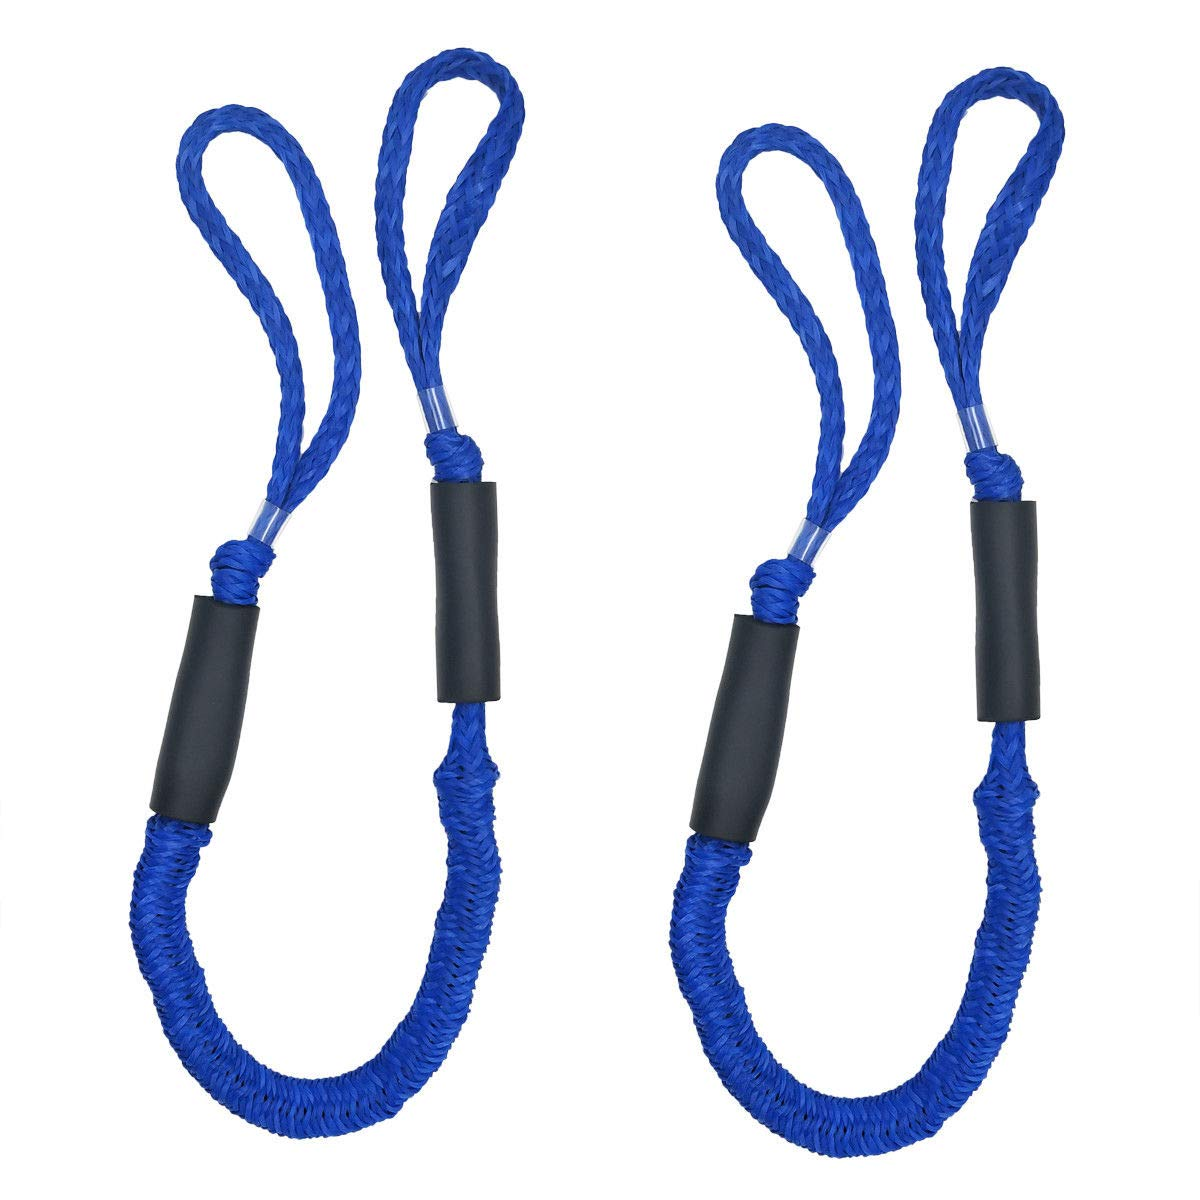 Wasyoh Bungee Dock Line, Mooring Ropes 2 Pack of 4-5.5 ft - Perfect for Boat, PWC, Jet ski, Pontoon, Kayak, Canoe, Power Boat (Black) (Blue) by Wasyoh